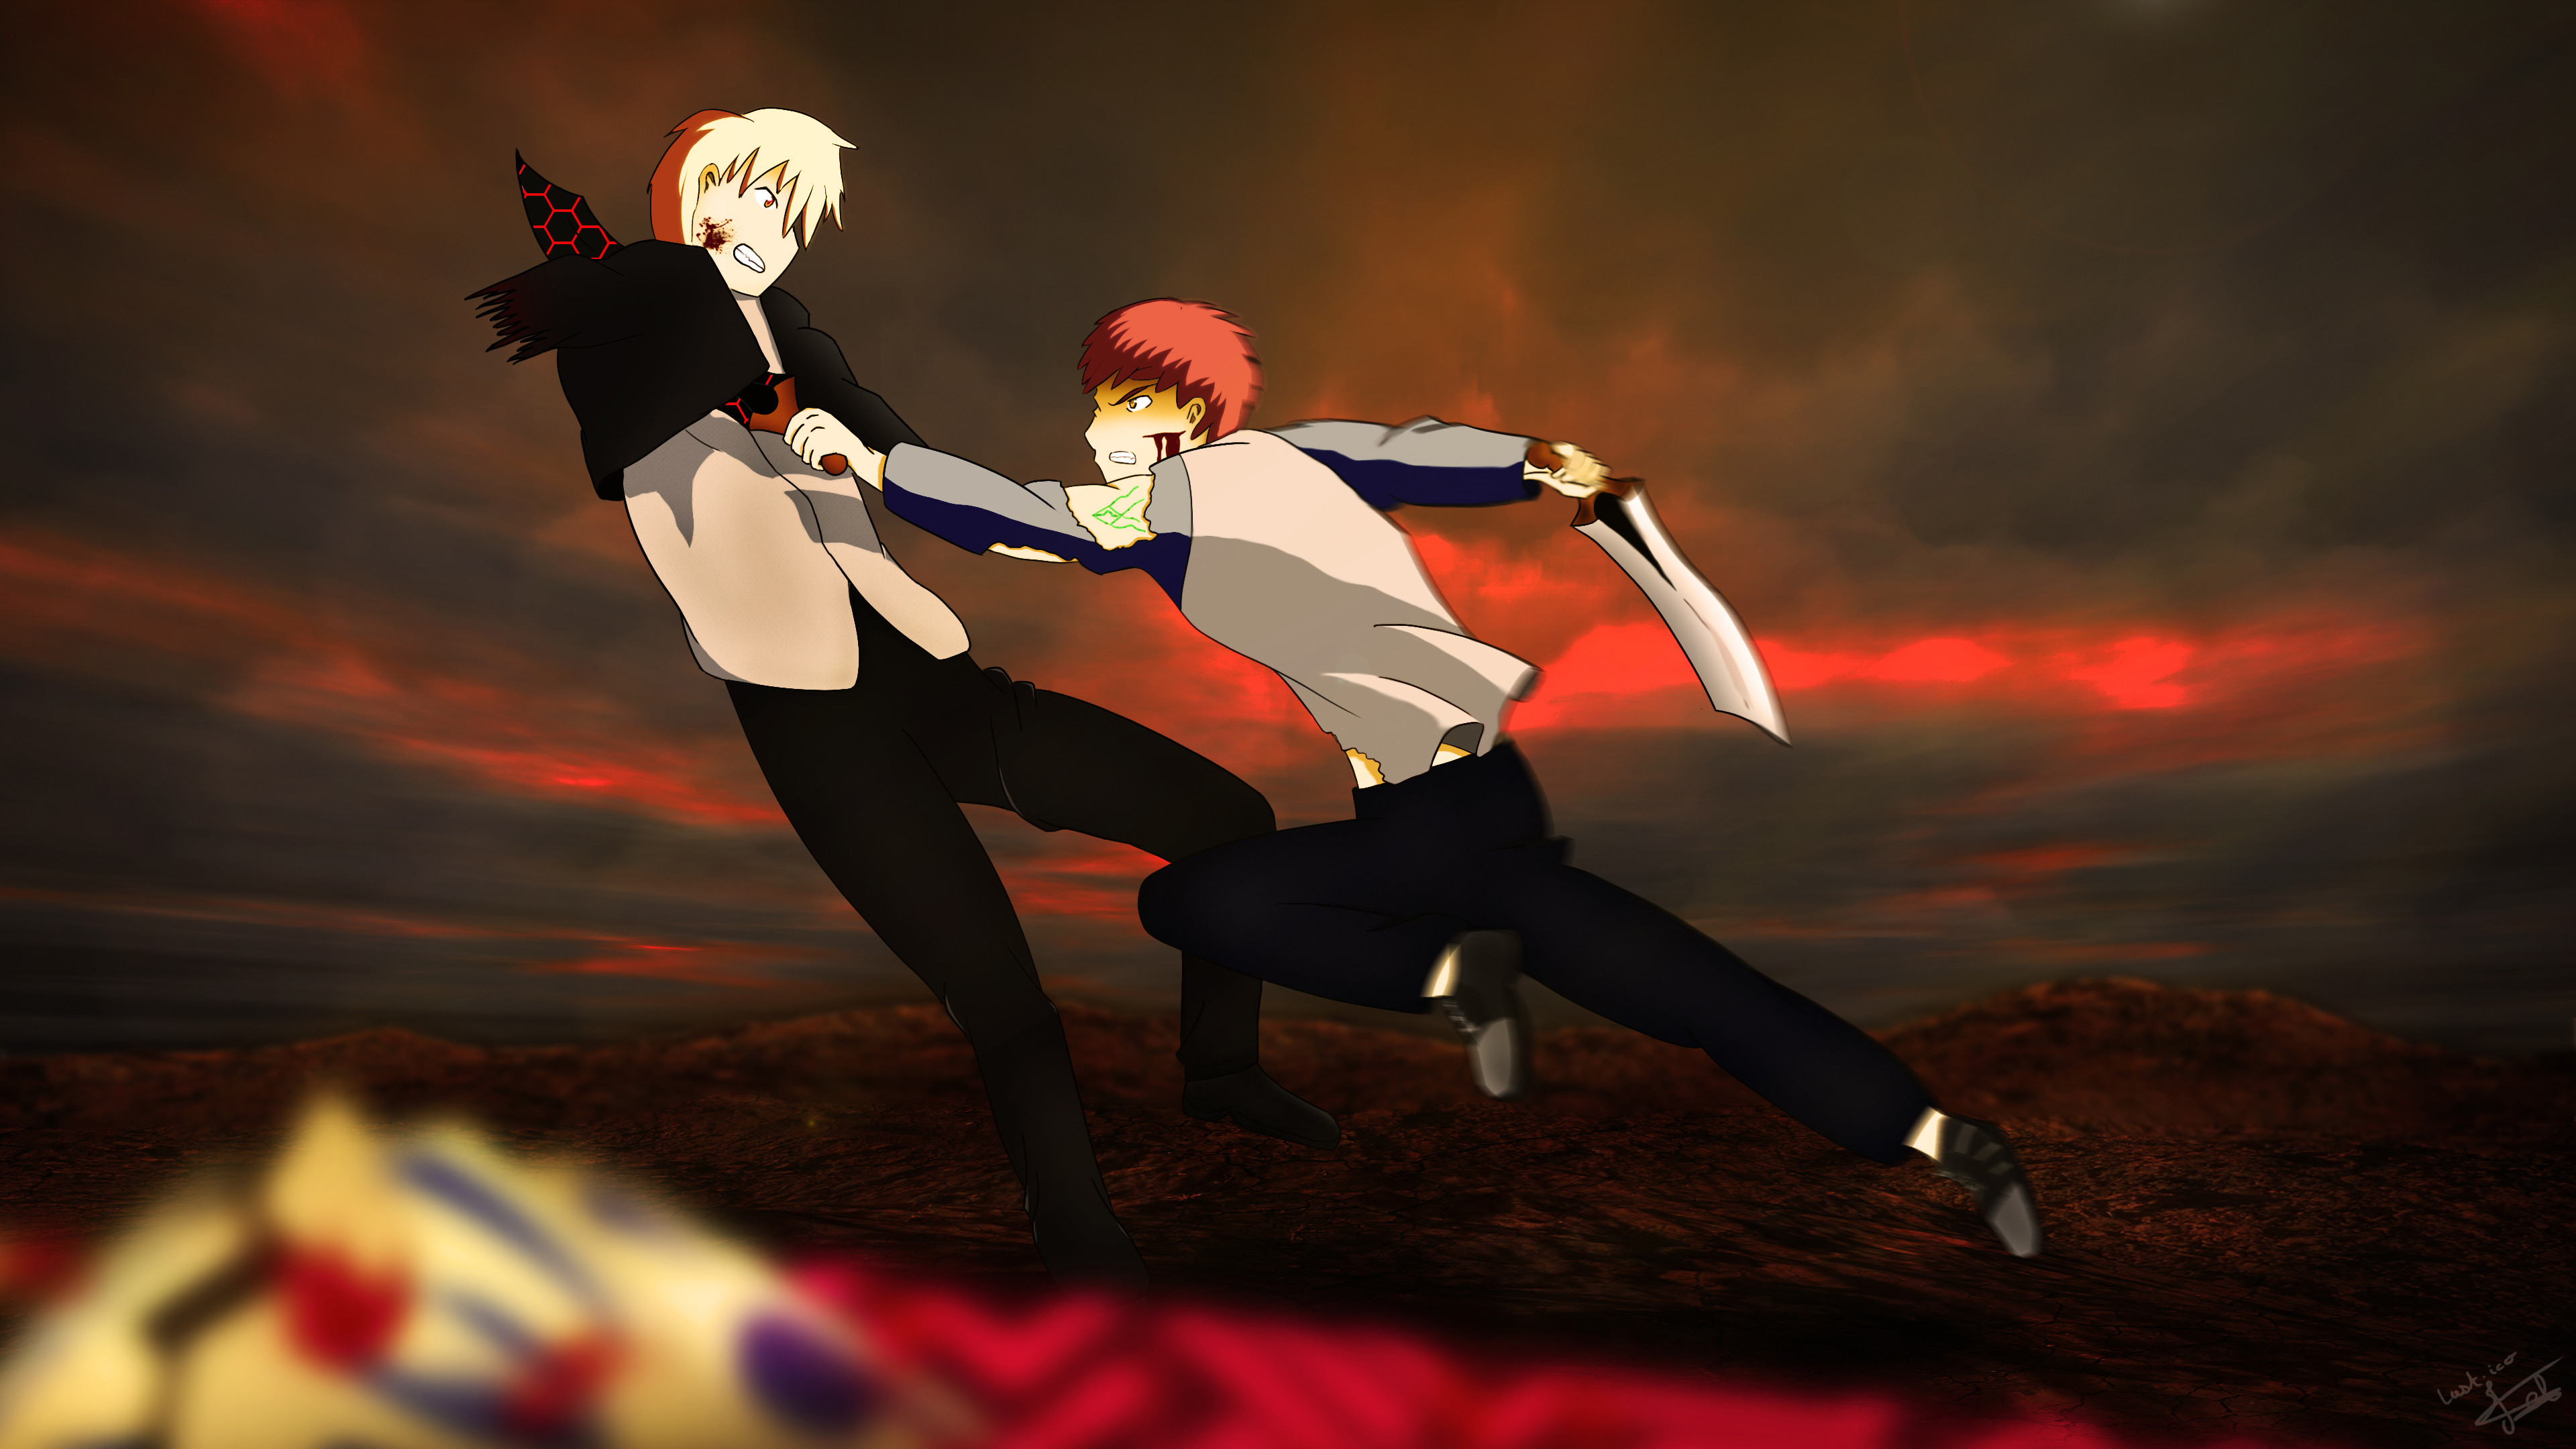 3840x2160 Anime Fate/Stay Night: Unlimited Blade Works Fate/Stay Night Unlimited .